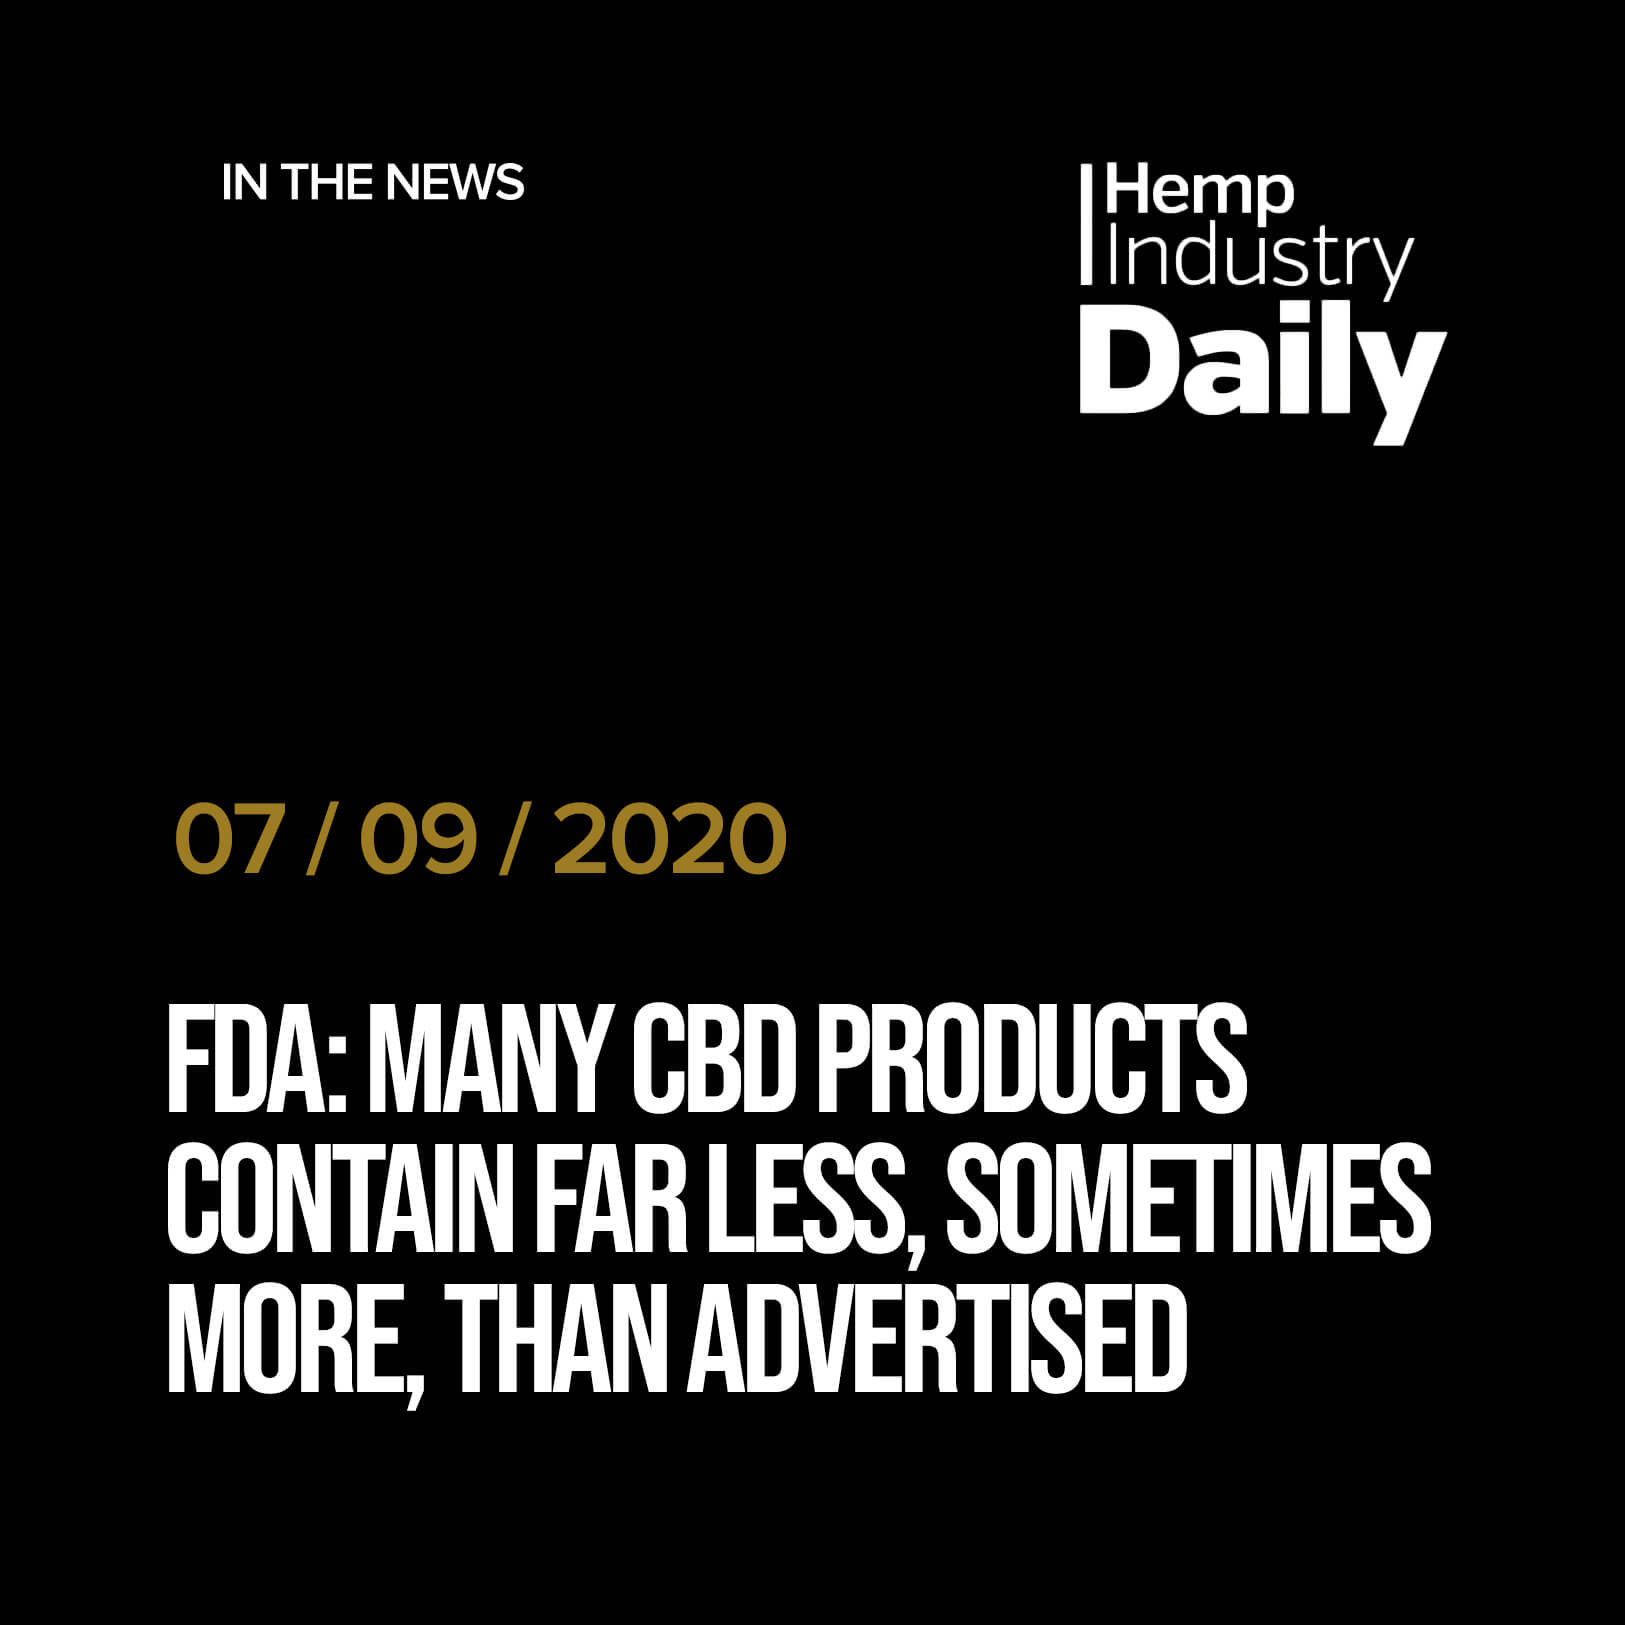 FDA: Many CBD products contain far less, sometimes more, than advertised